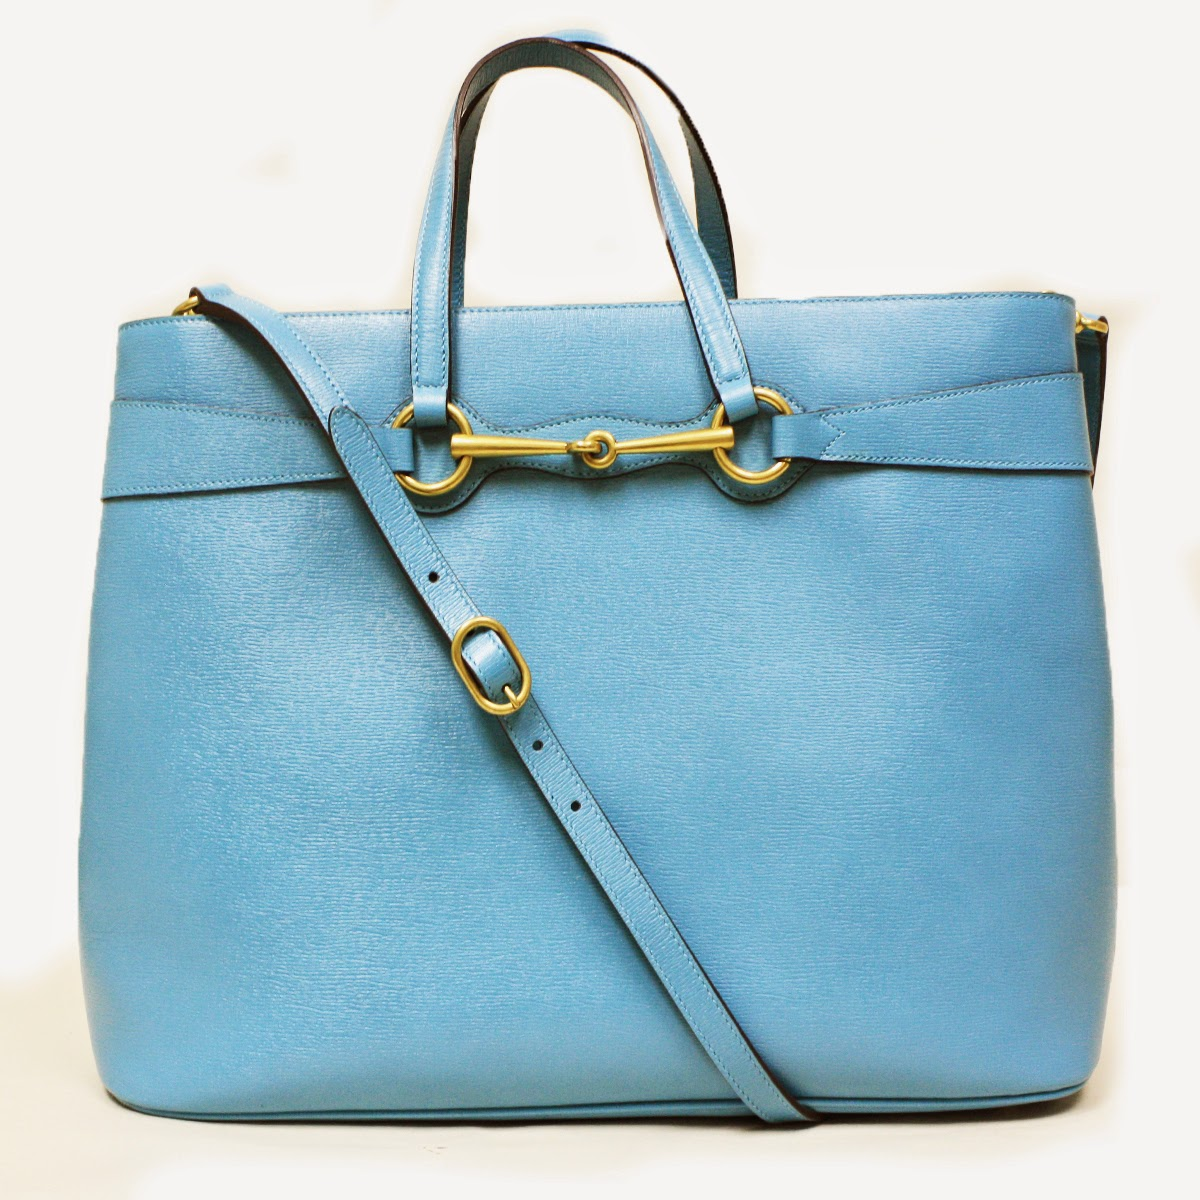 Gucci Horsebit Convertible Turquoise Blue Large Leather Tote Bag 320903